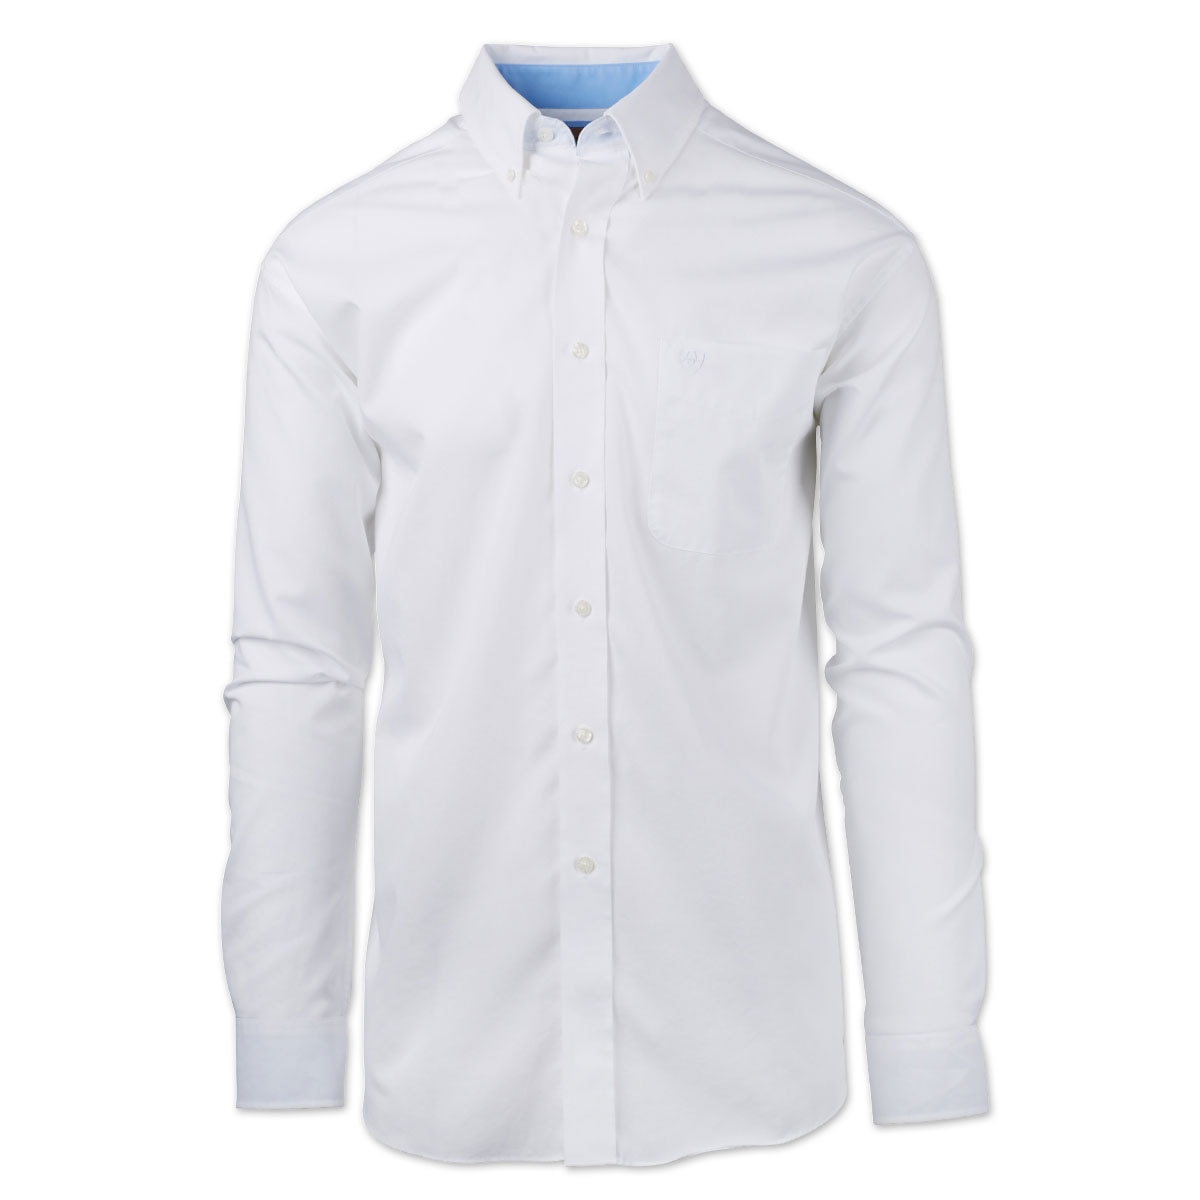 655581d0 Ariat Men's Solid Twill Wrinkle Free Shirt